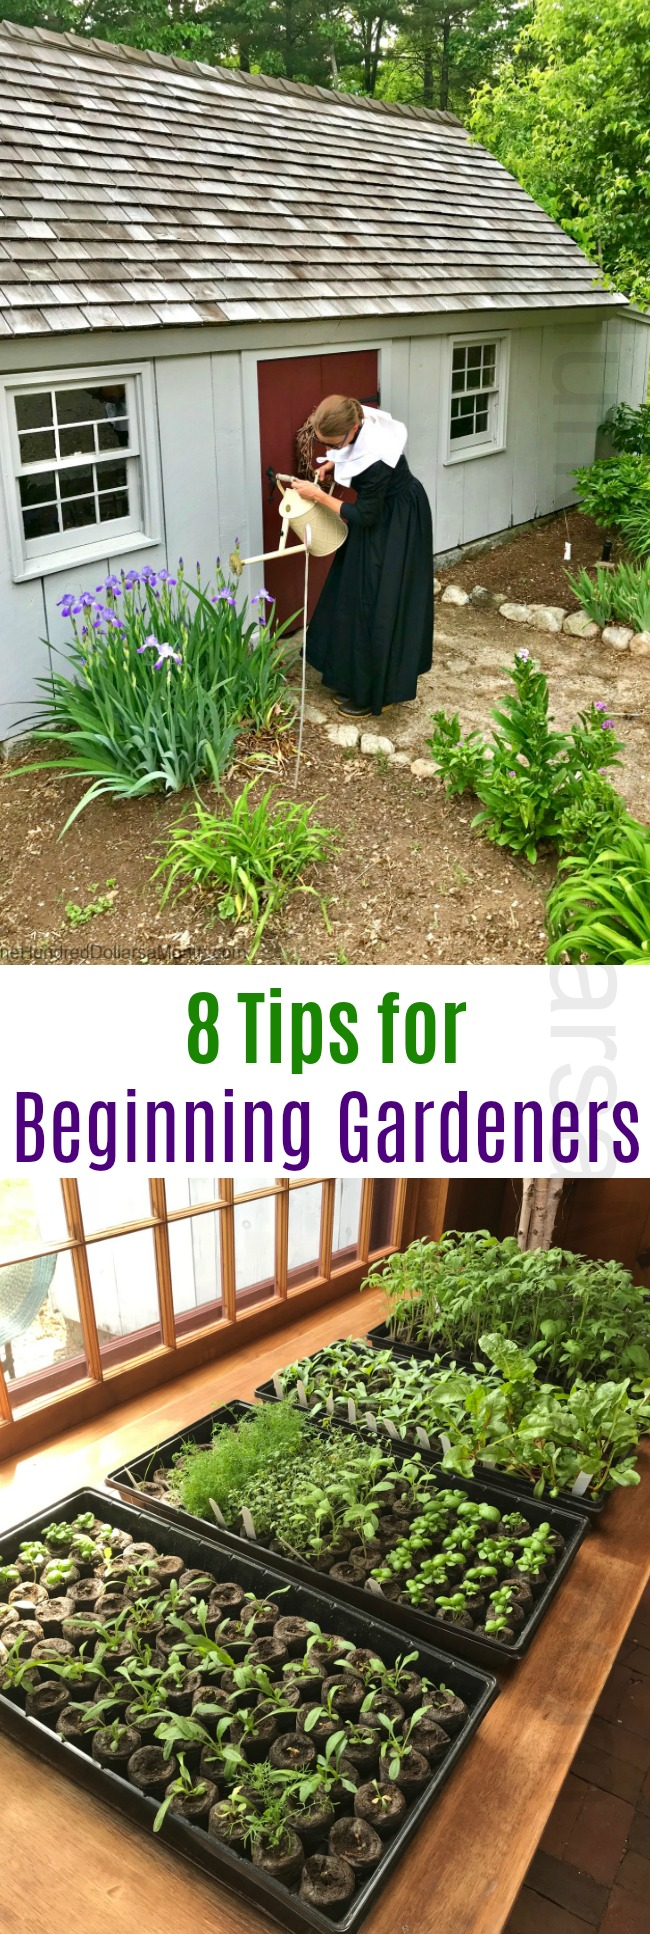 8 Tips for Beginning Gardeners